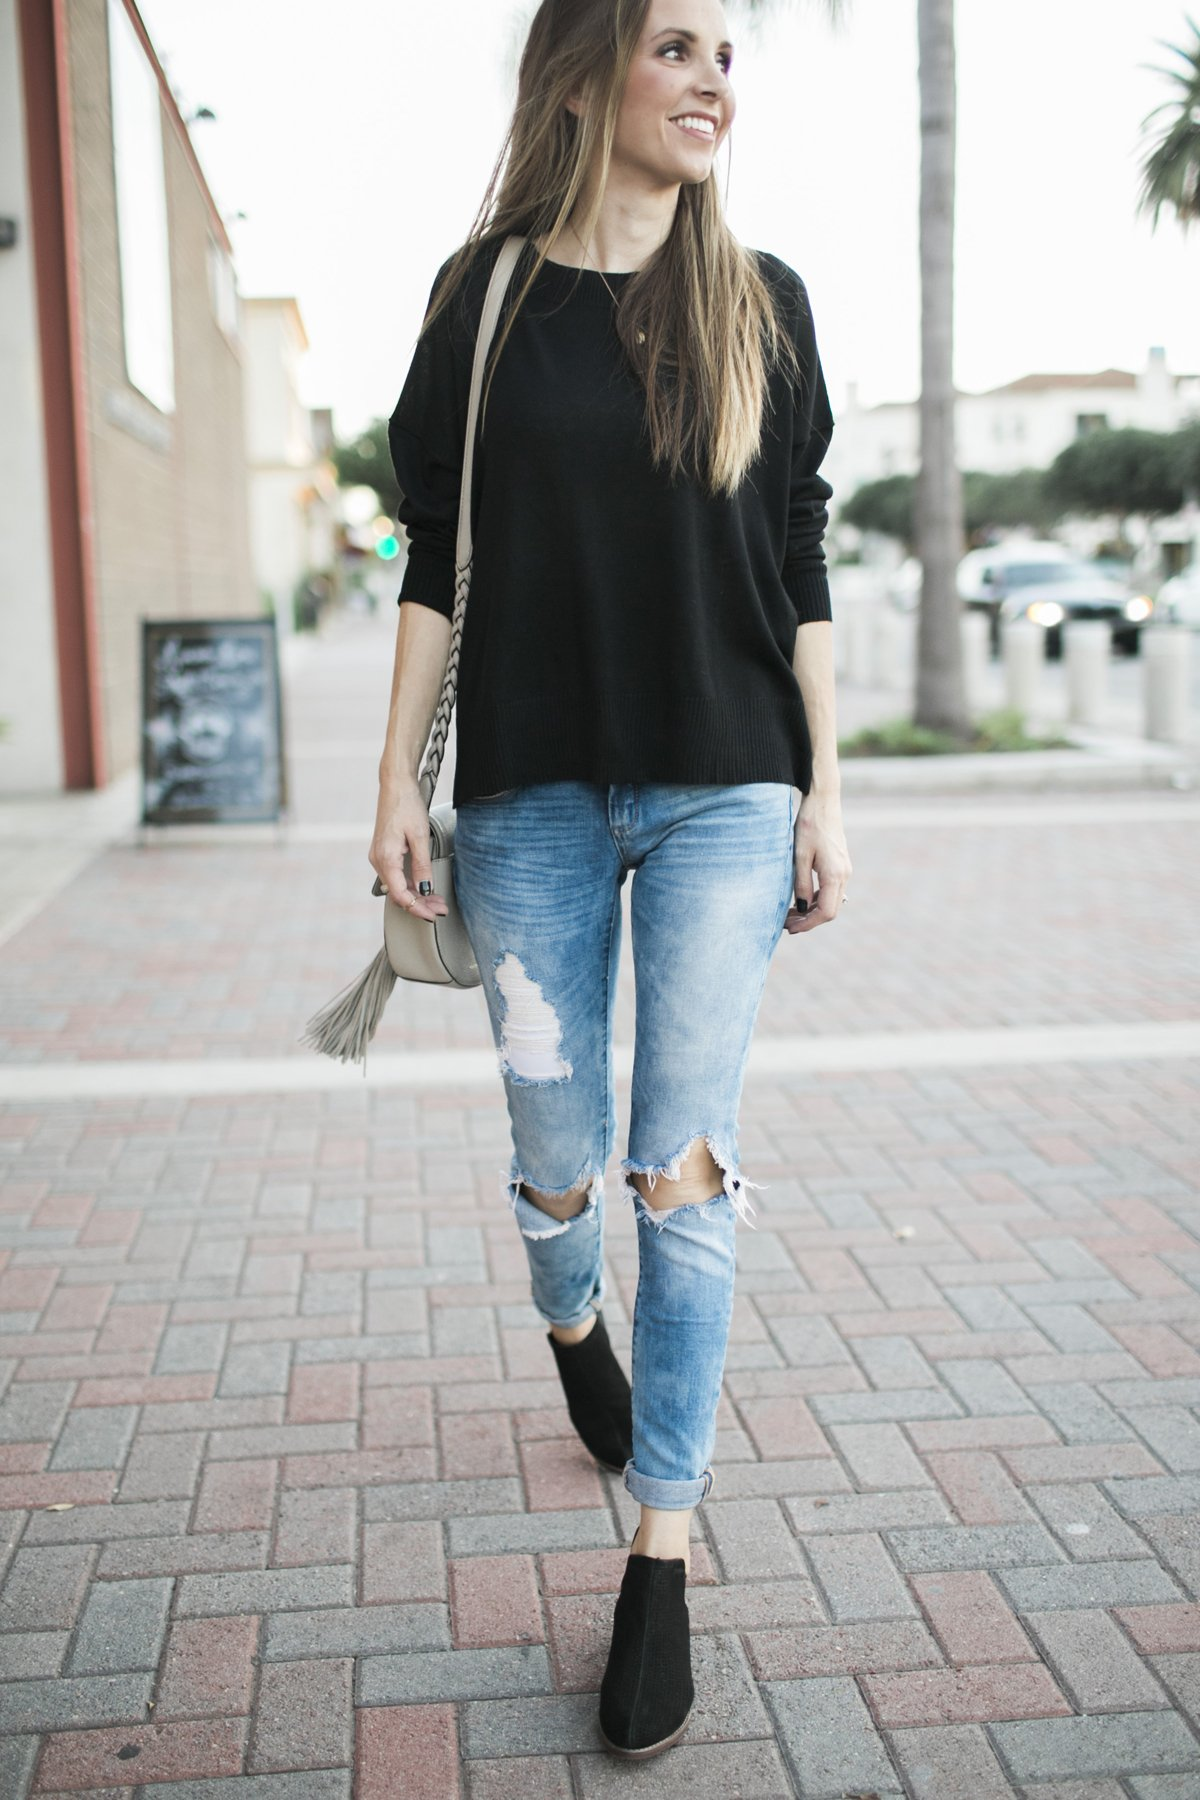 merricks-art-boyfriend-jeans-black-sweater